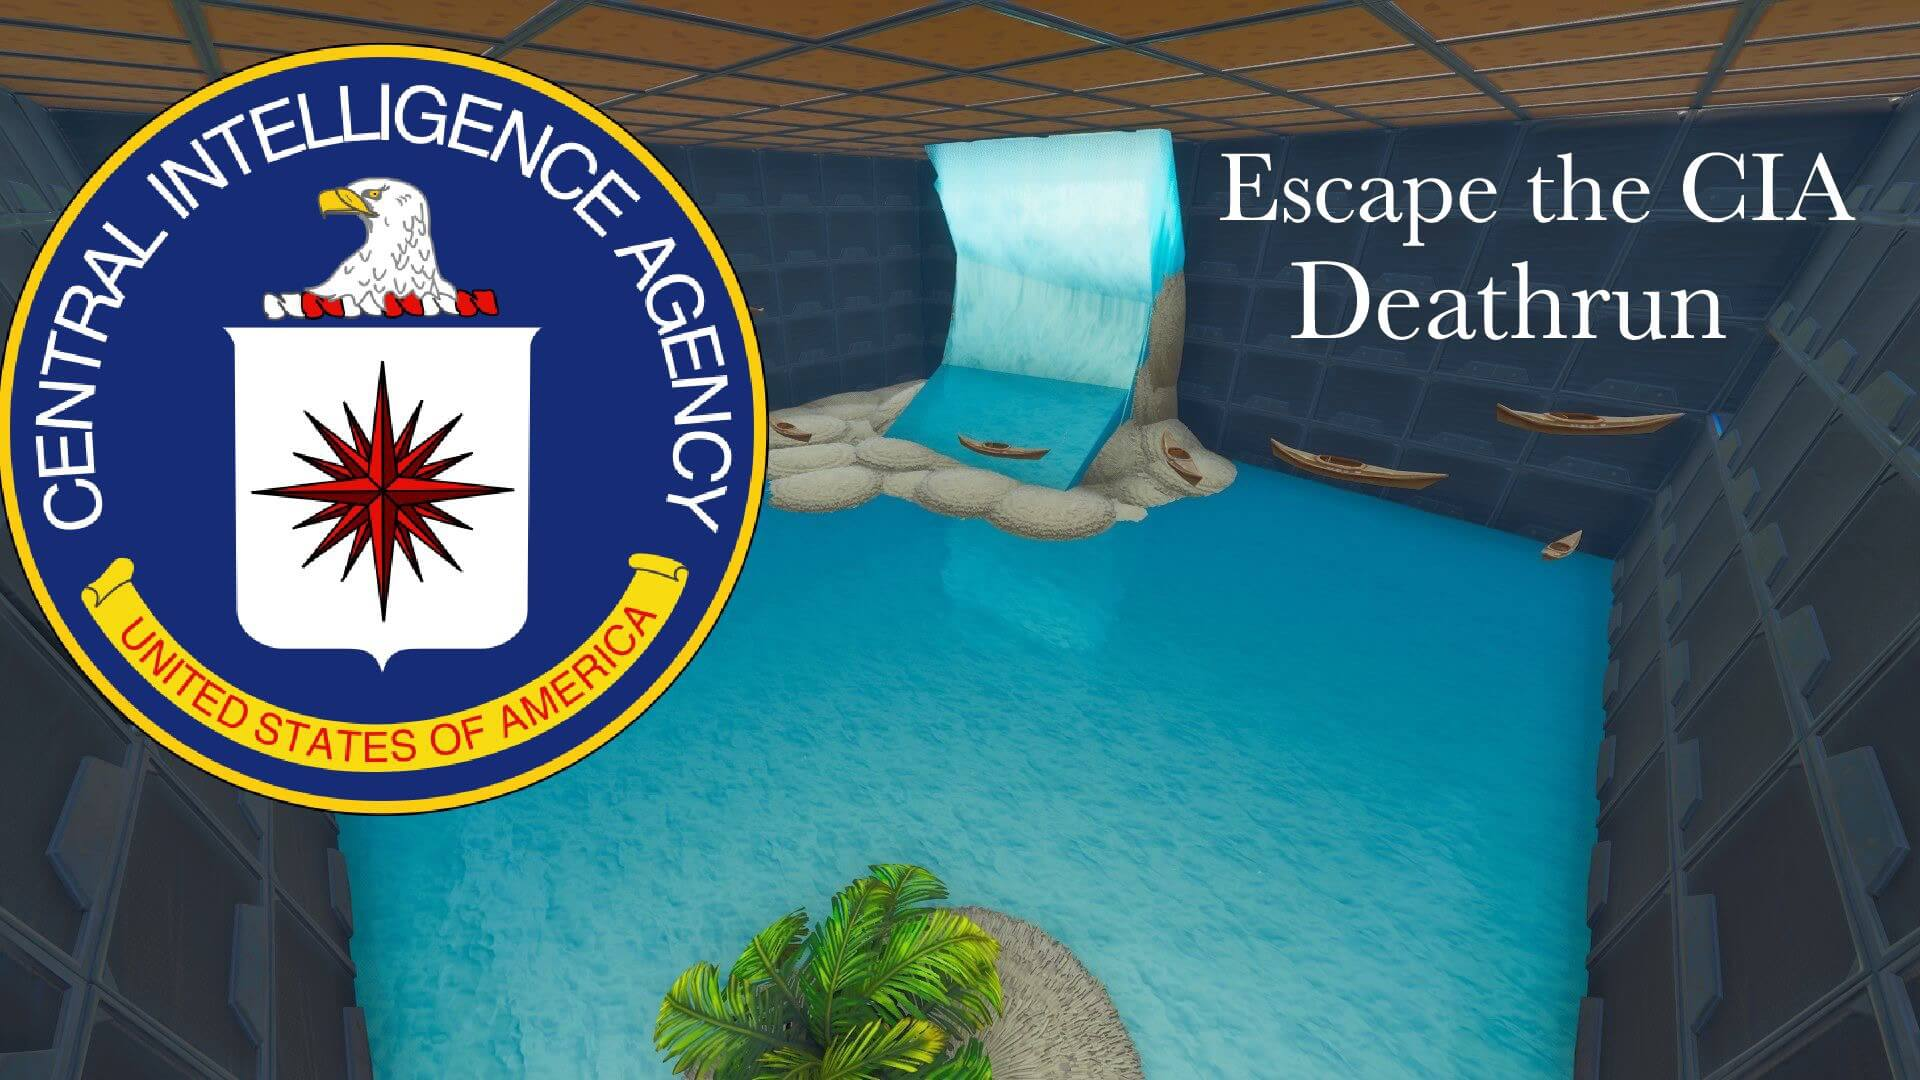 ESCAPE THE C.I.A